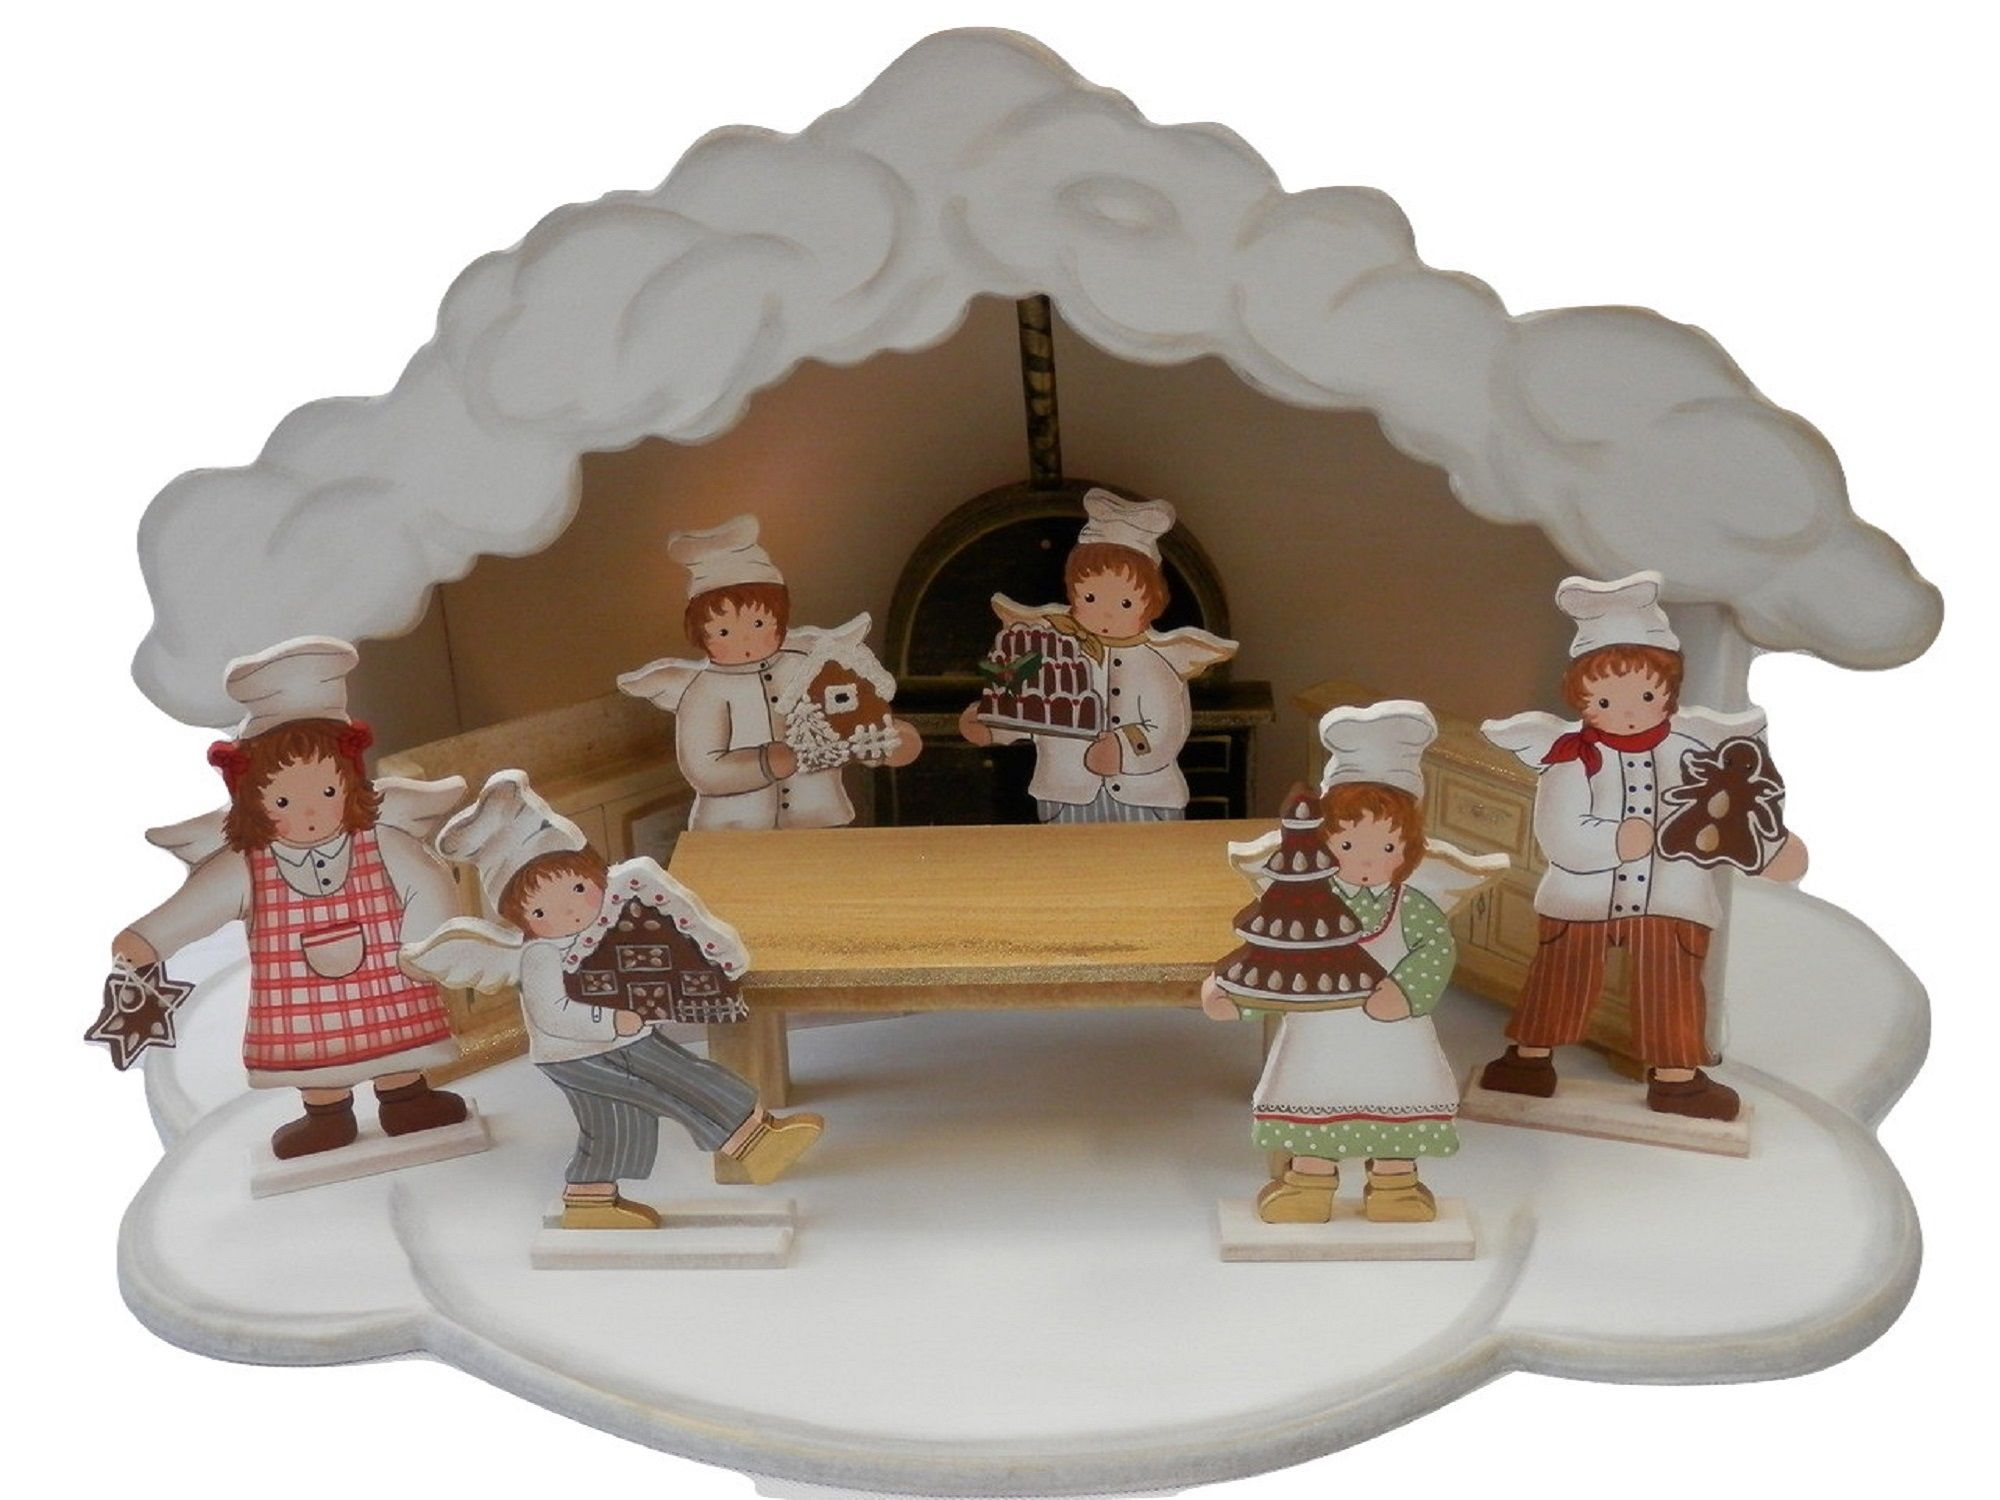 Christmas Cloud Bakery with Furniture & Figures